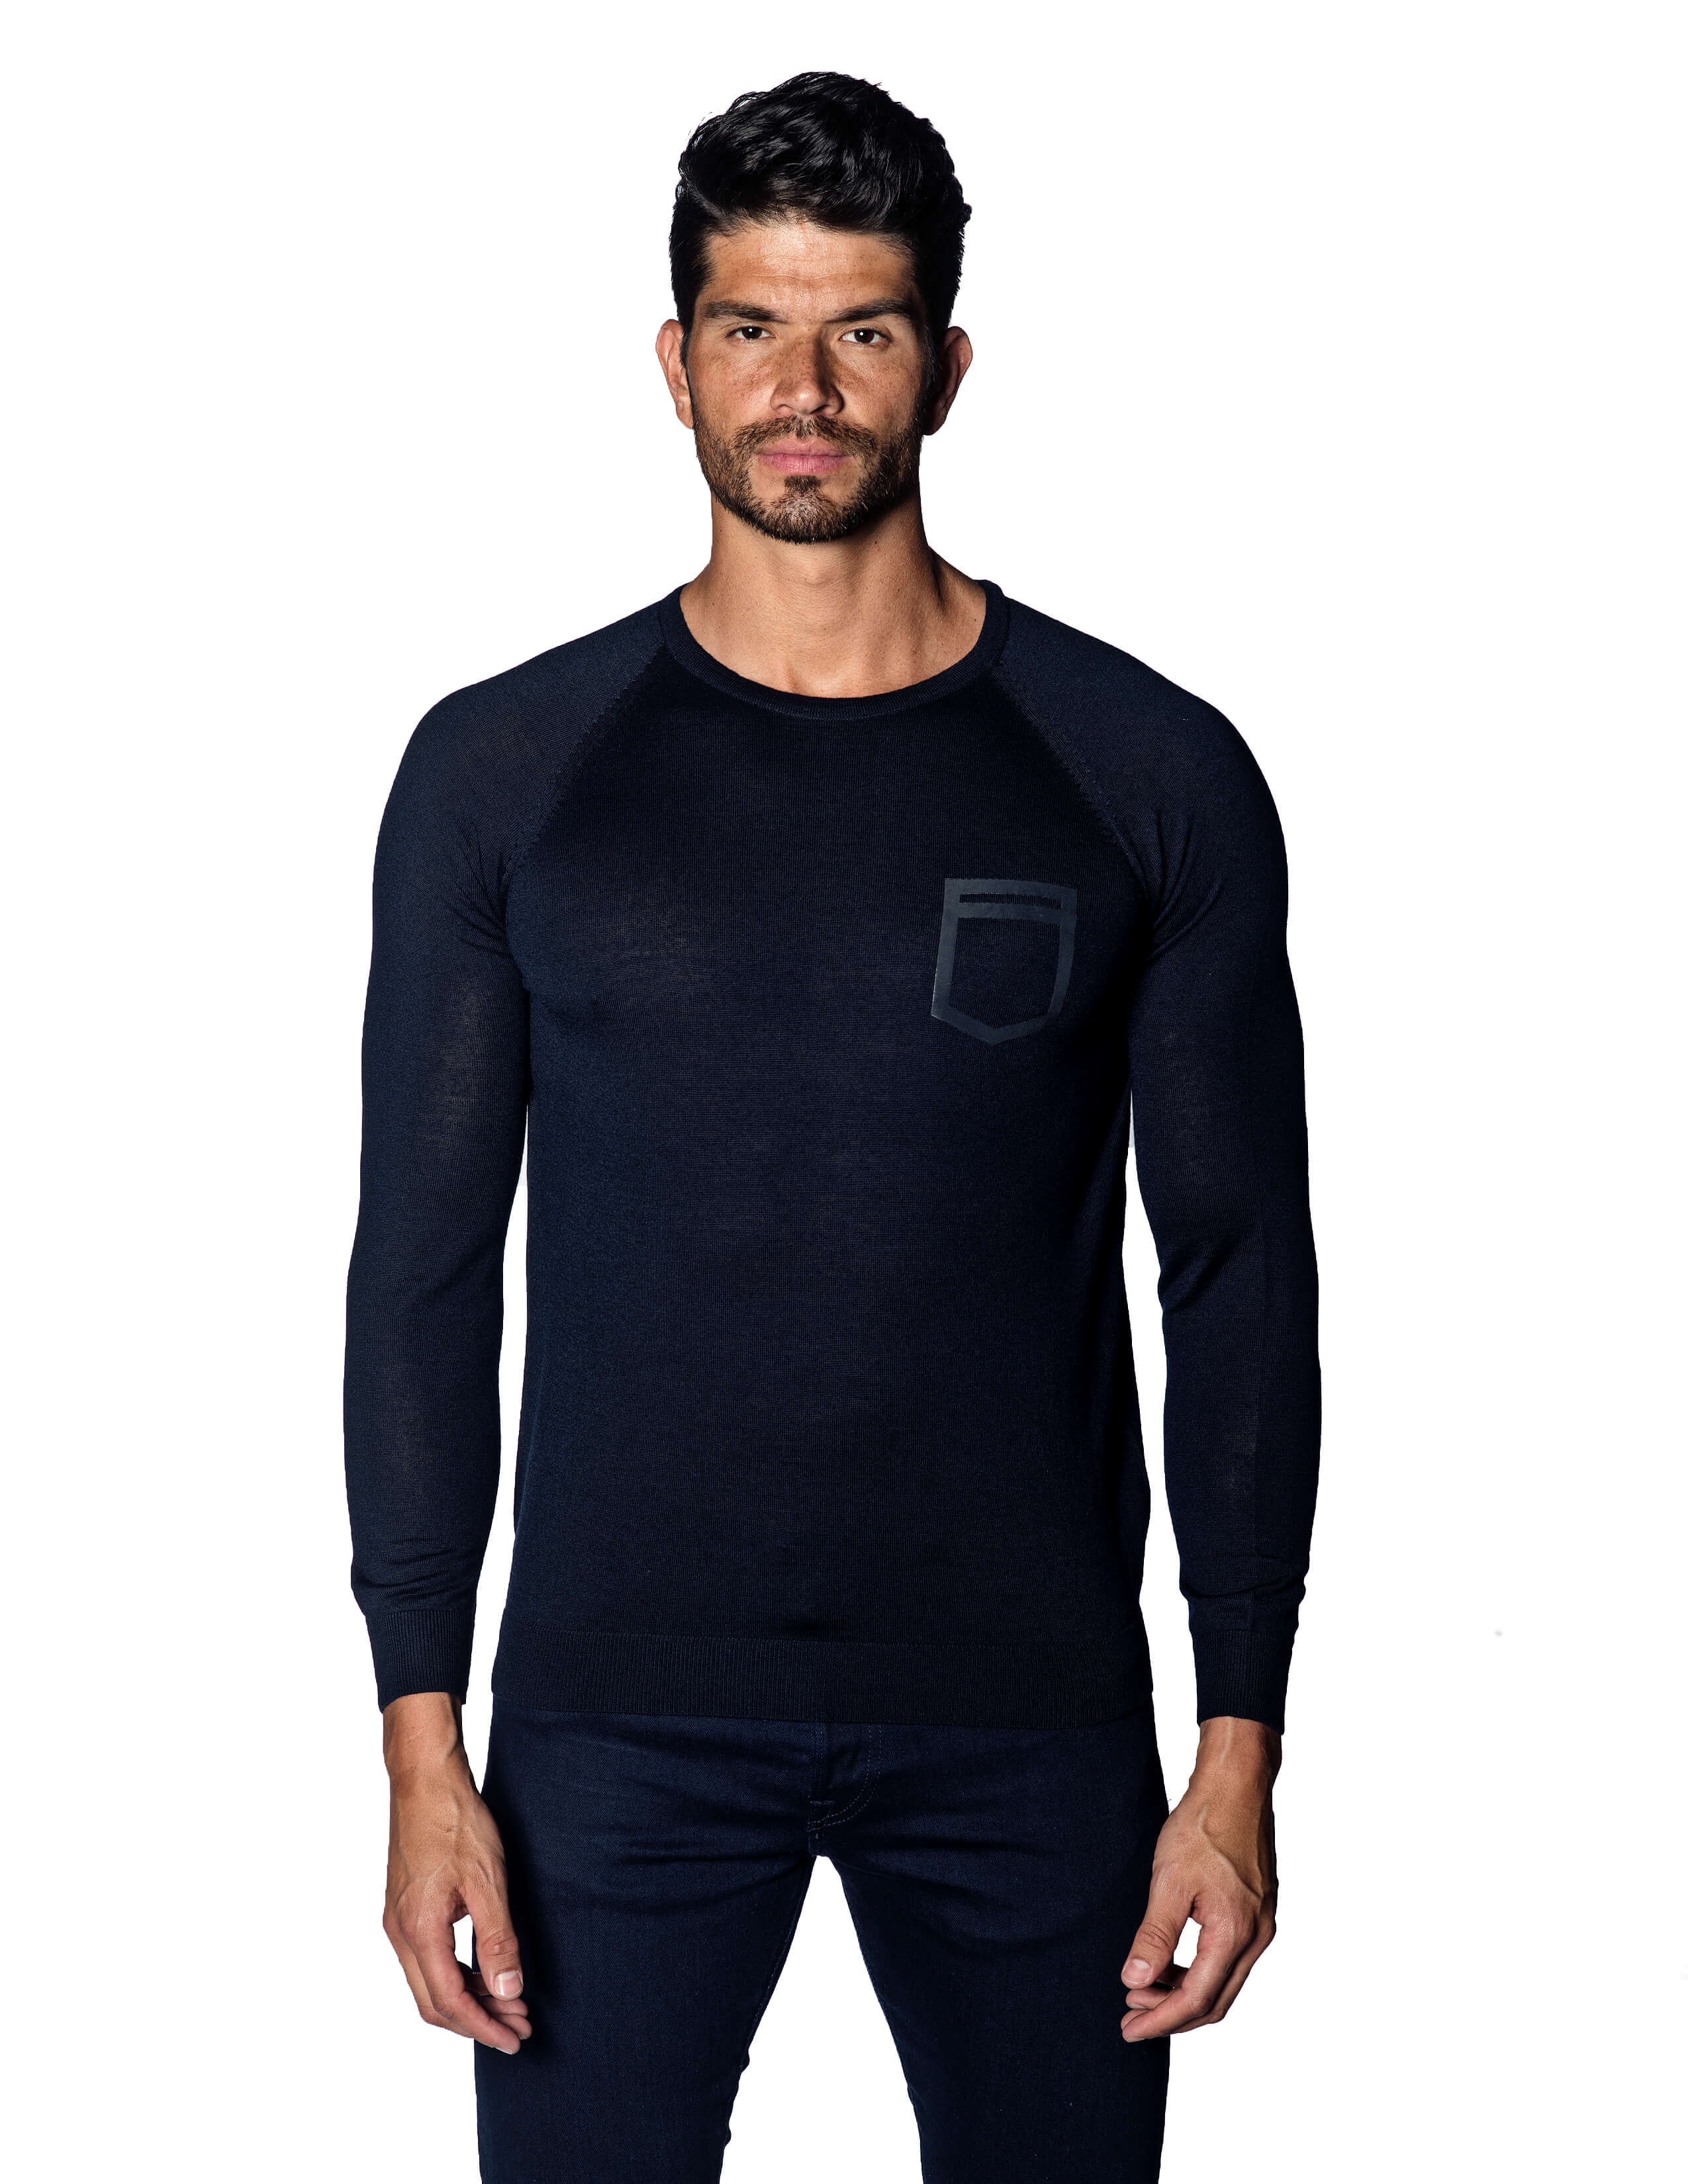 Navy Sweater Crew Neck with Faux Pocket for Men - front 1896-NV